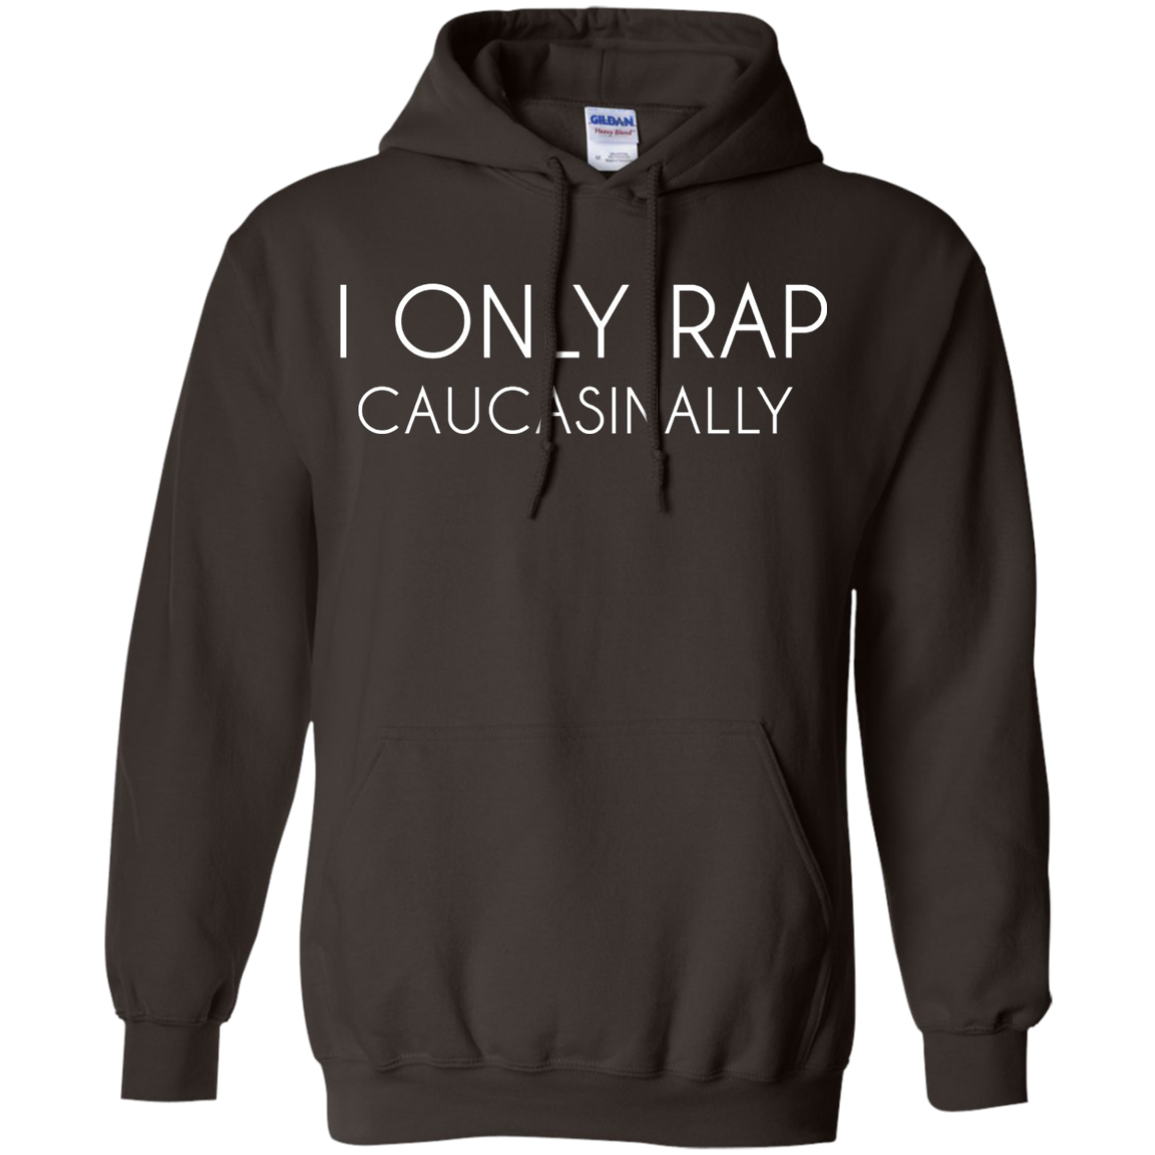 I Only Rap Caucasionally Shirt - Adult Humor Graphic Tee